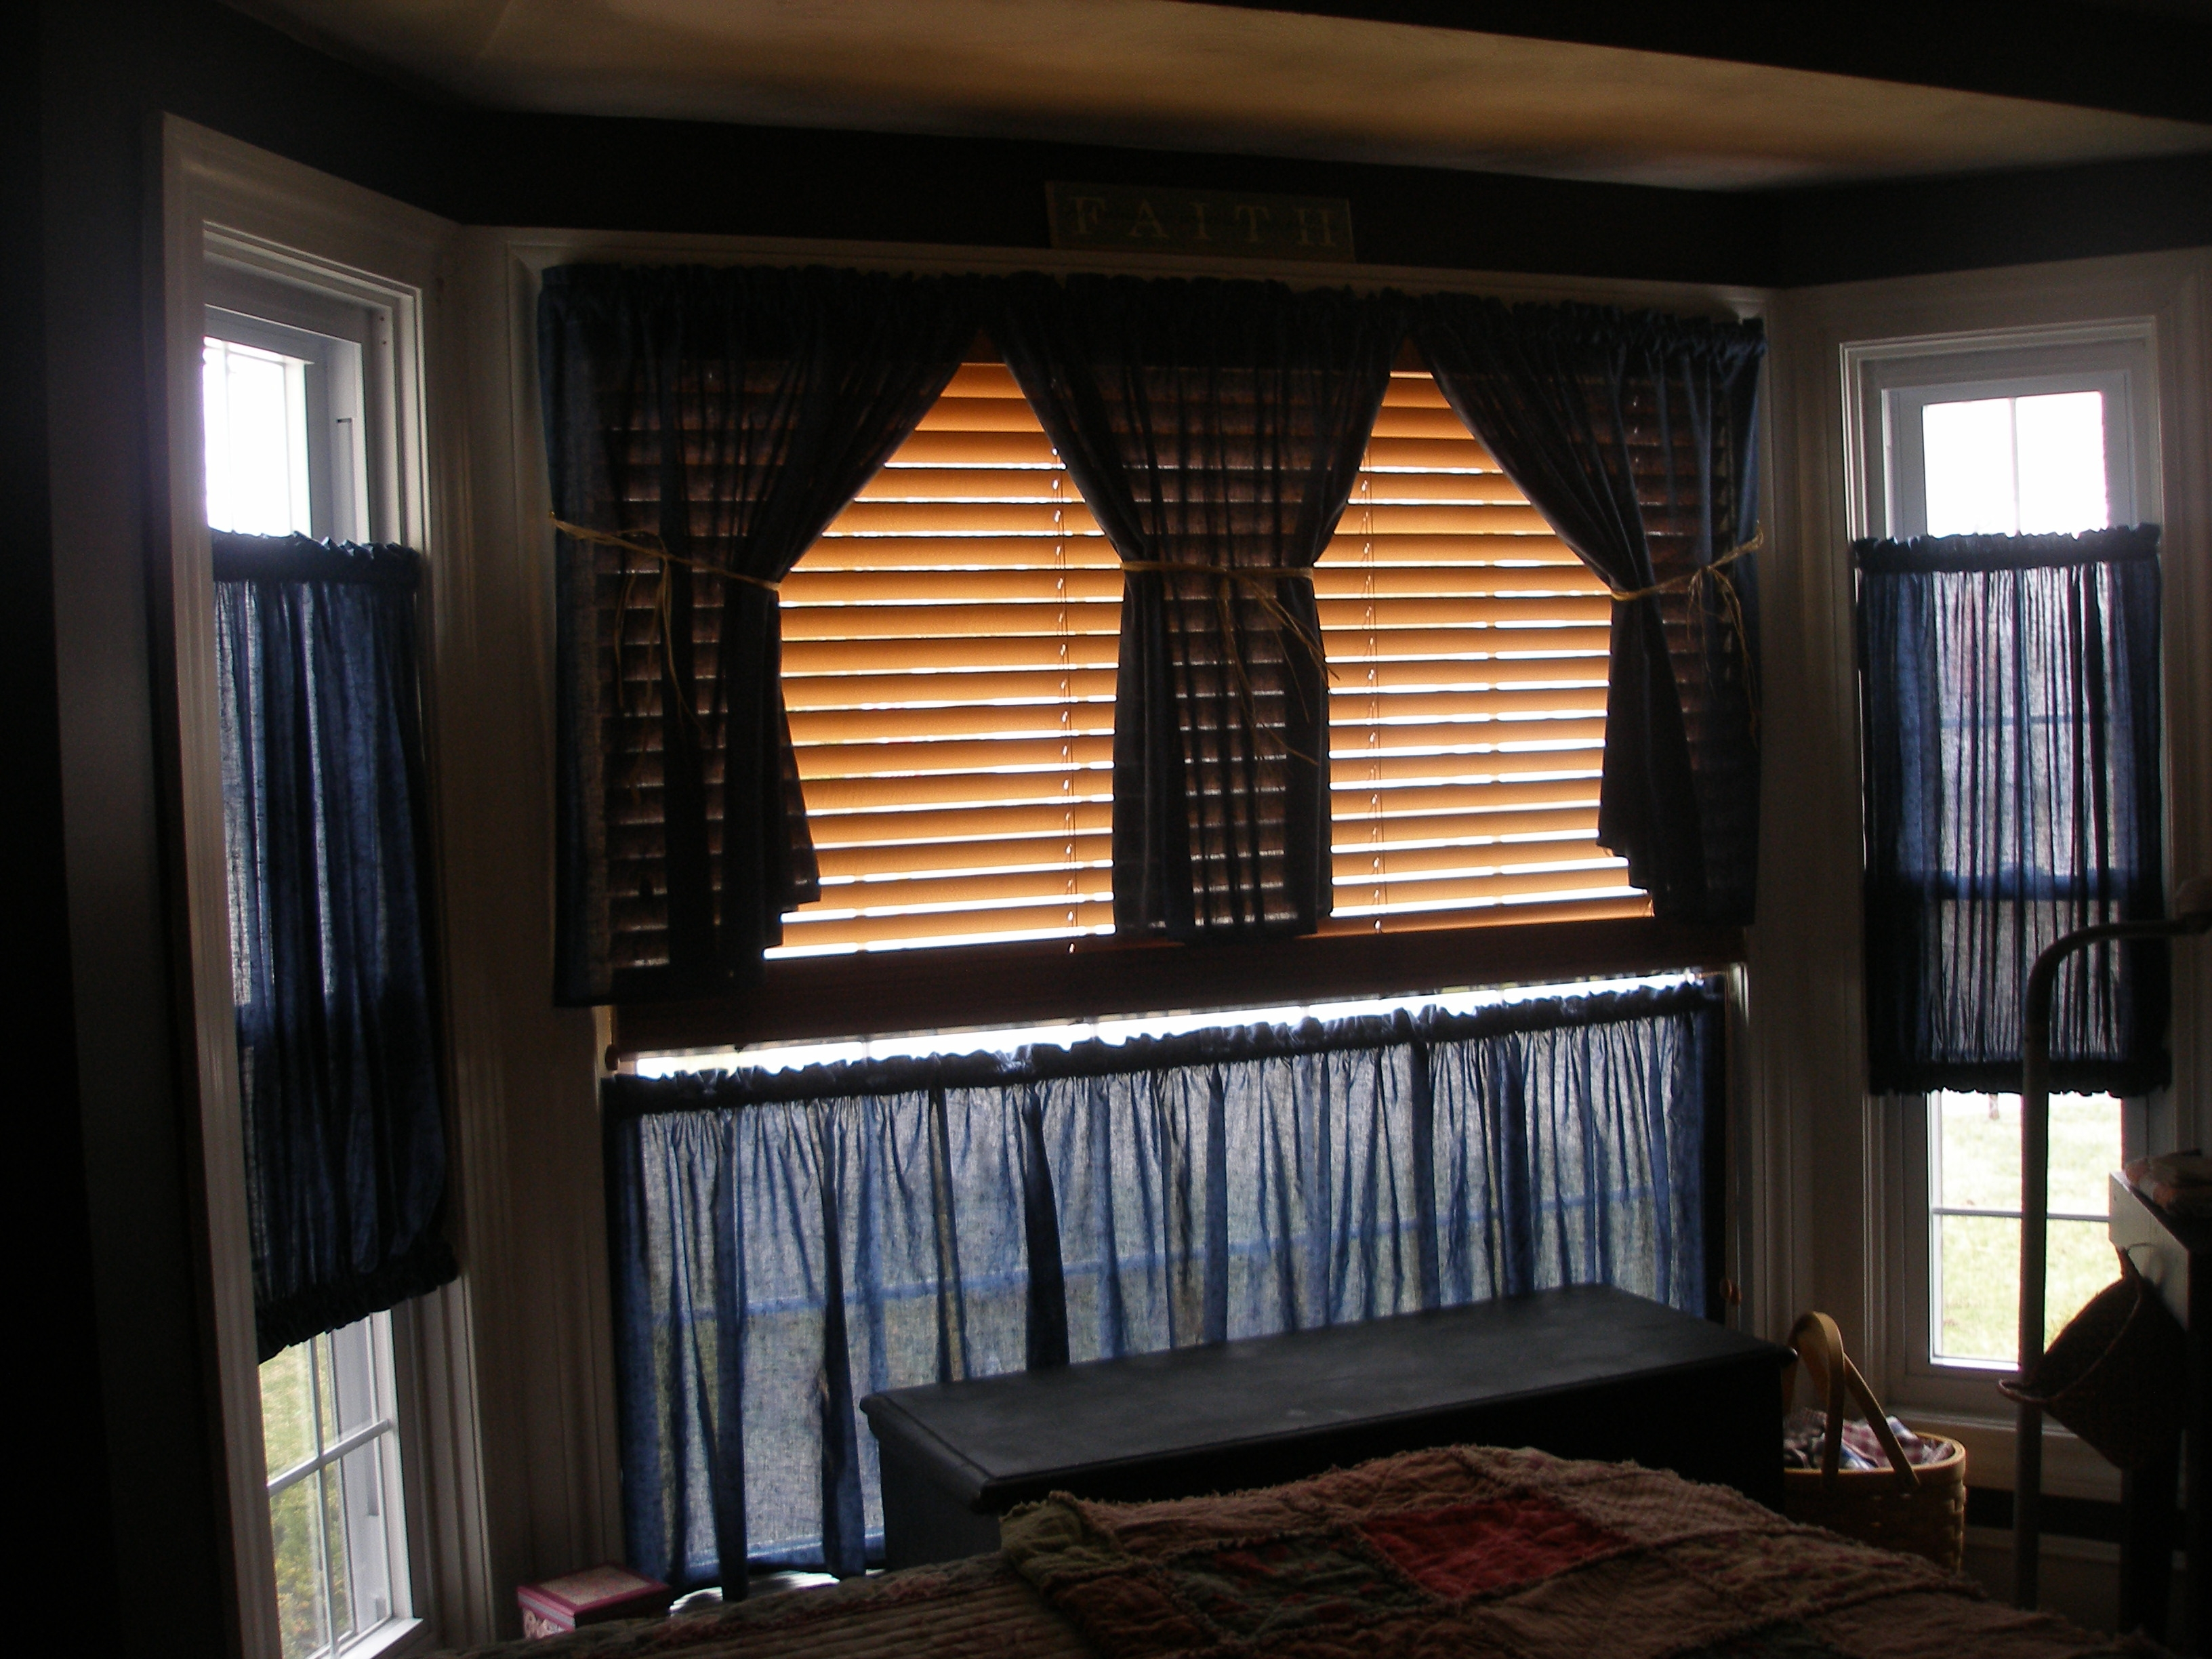 Bedroom Curtains Ideas Curtain Bedroom Curtain Bedroom Curtains Intended For Curtains For Bedrooms (Image 6 of 25)